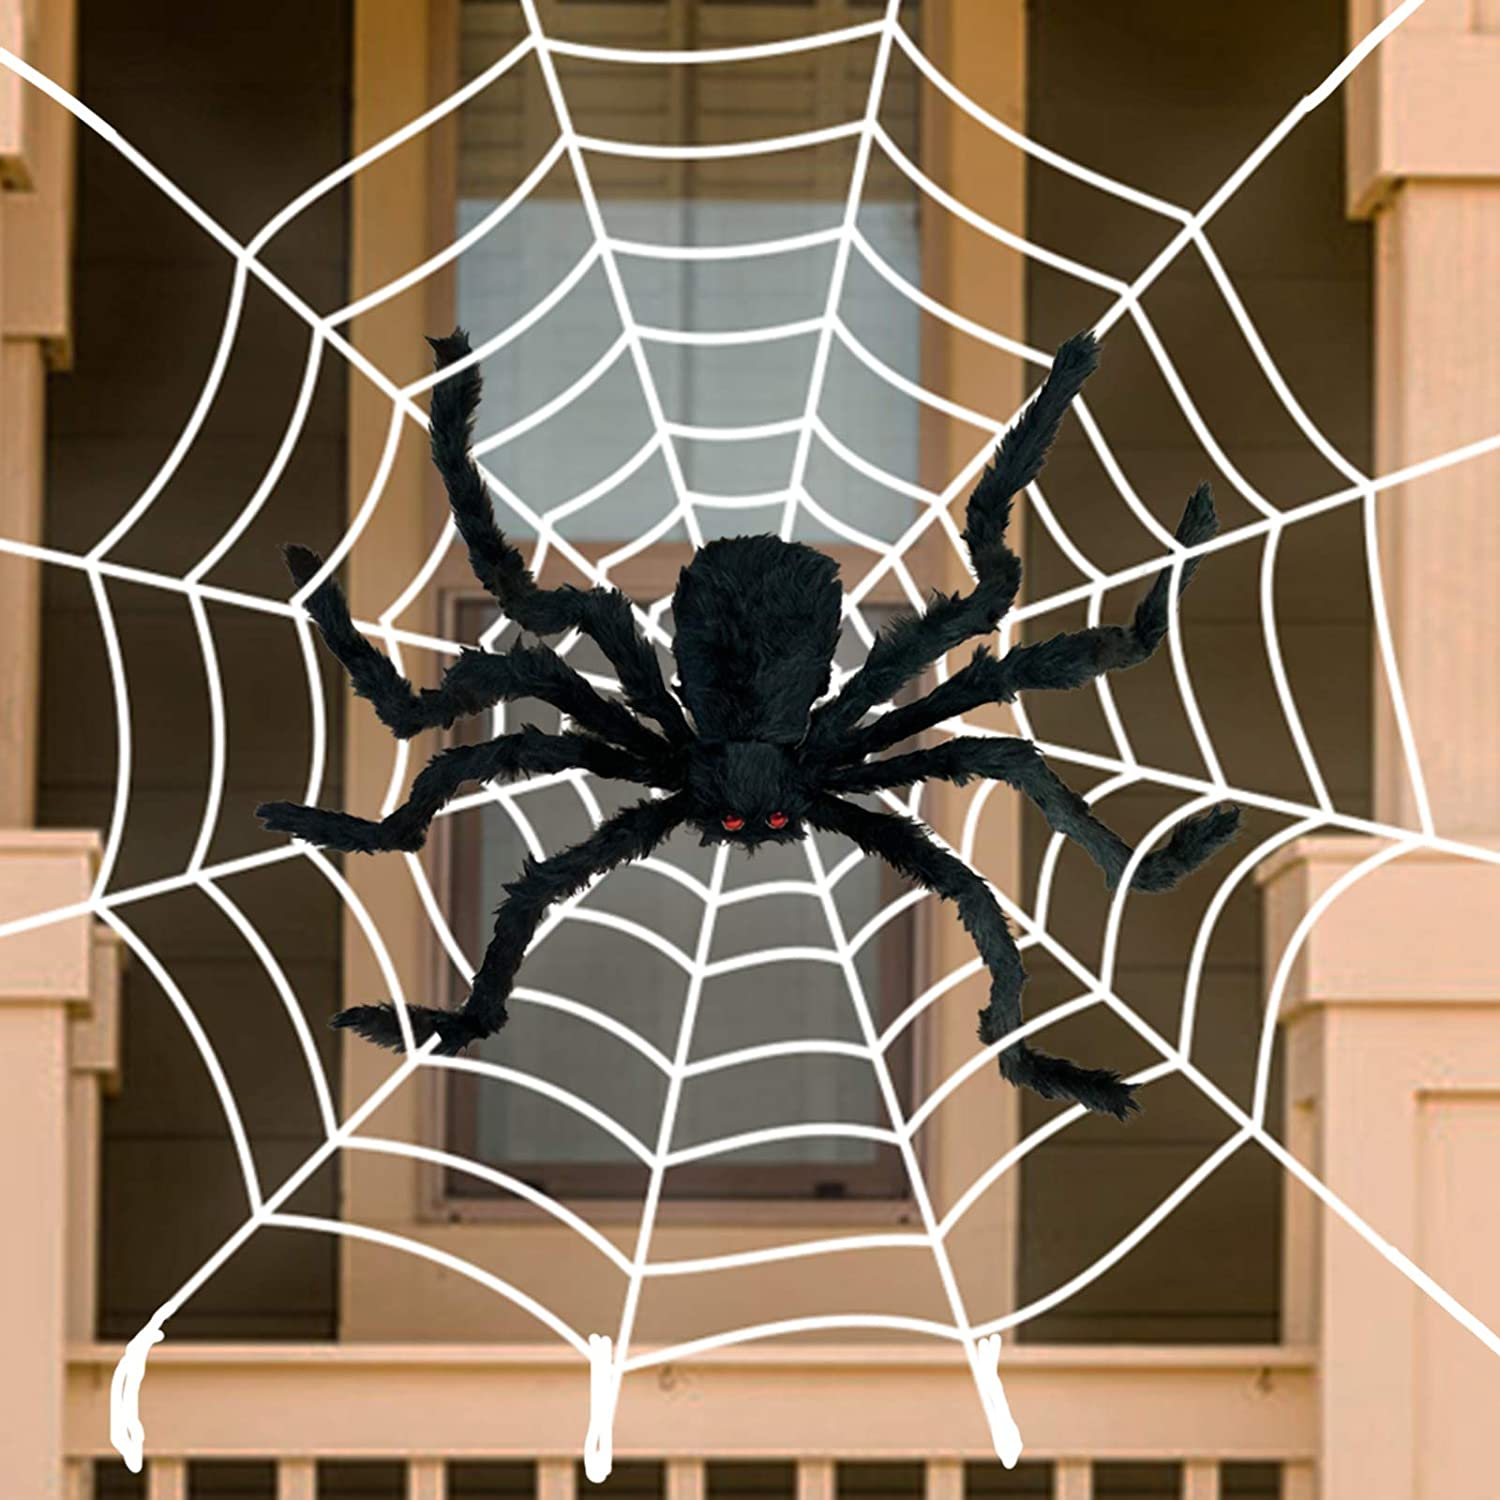 "Anditoy 50"" Giant Halloween Spider with 12ft Round Large Web Fake Scary Hairy Spiders Props for Halloween Decorations Outdoor Halloween Decor Yard Party Decoration"